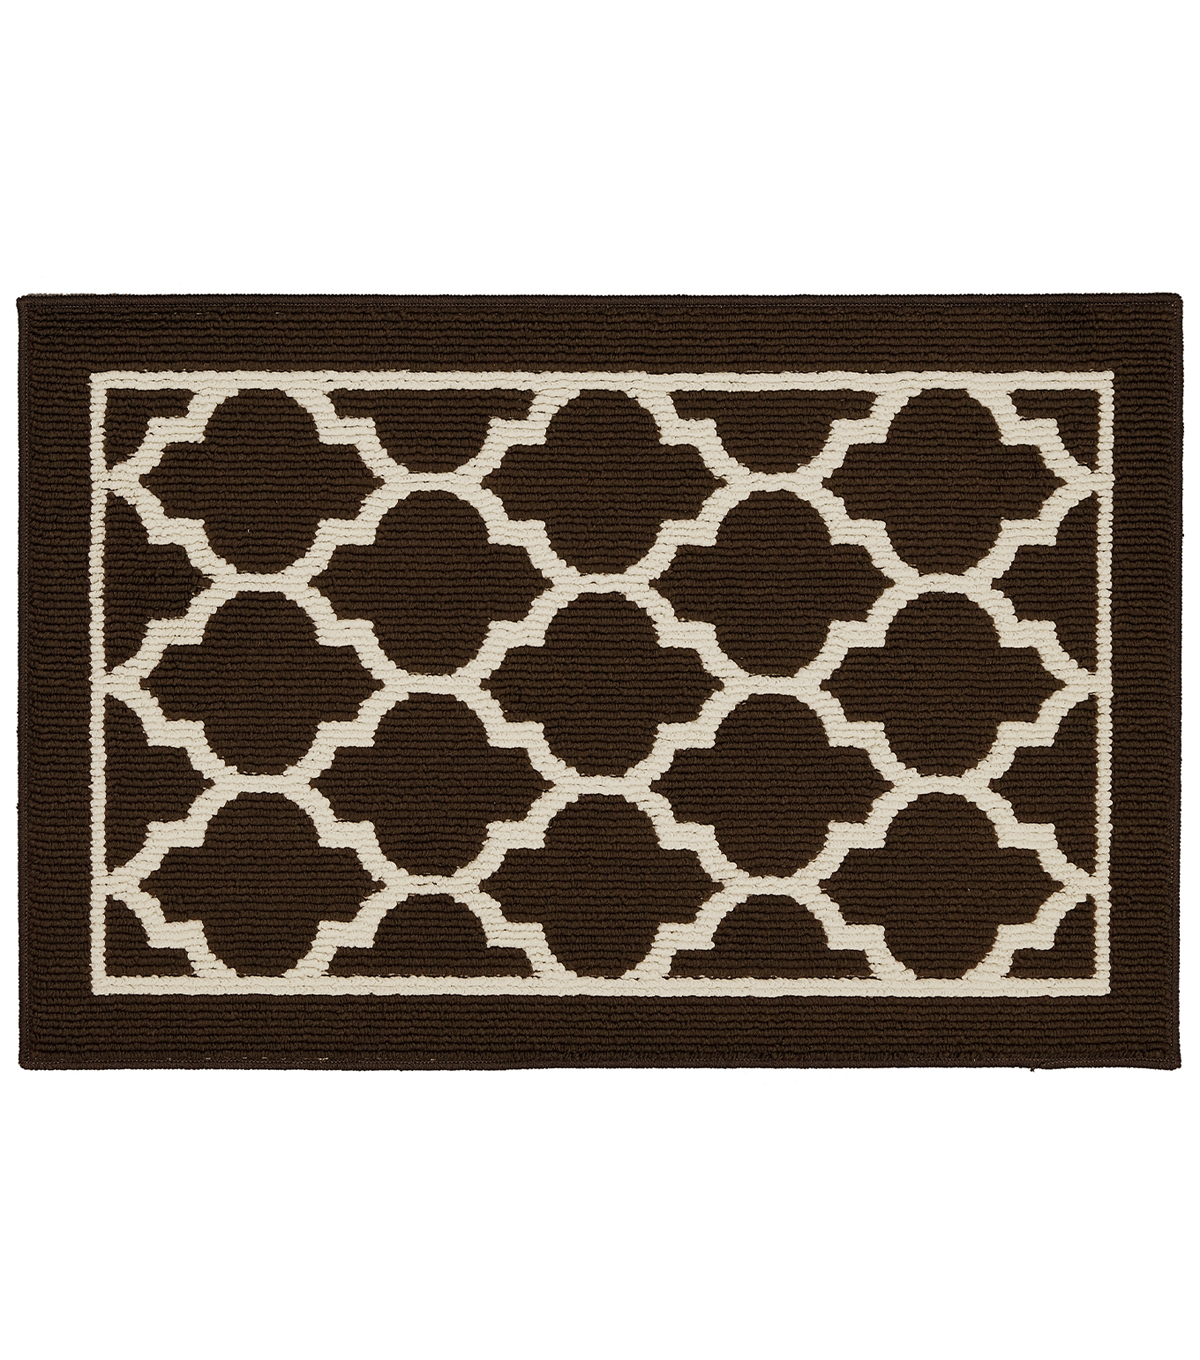 Mohawk Home Chai Tea Mink Starch Accent Rug